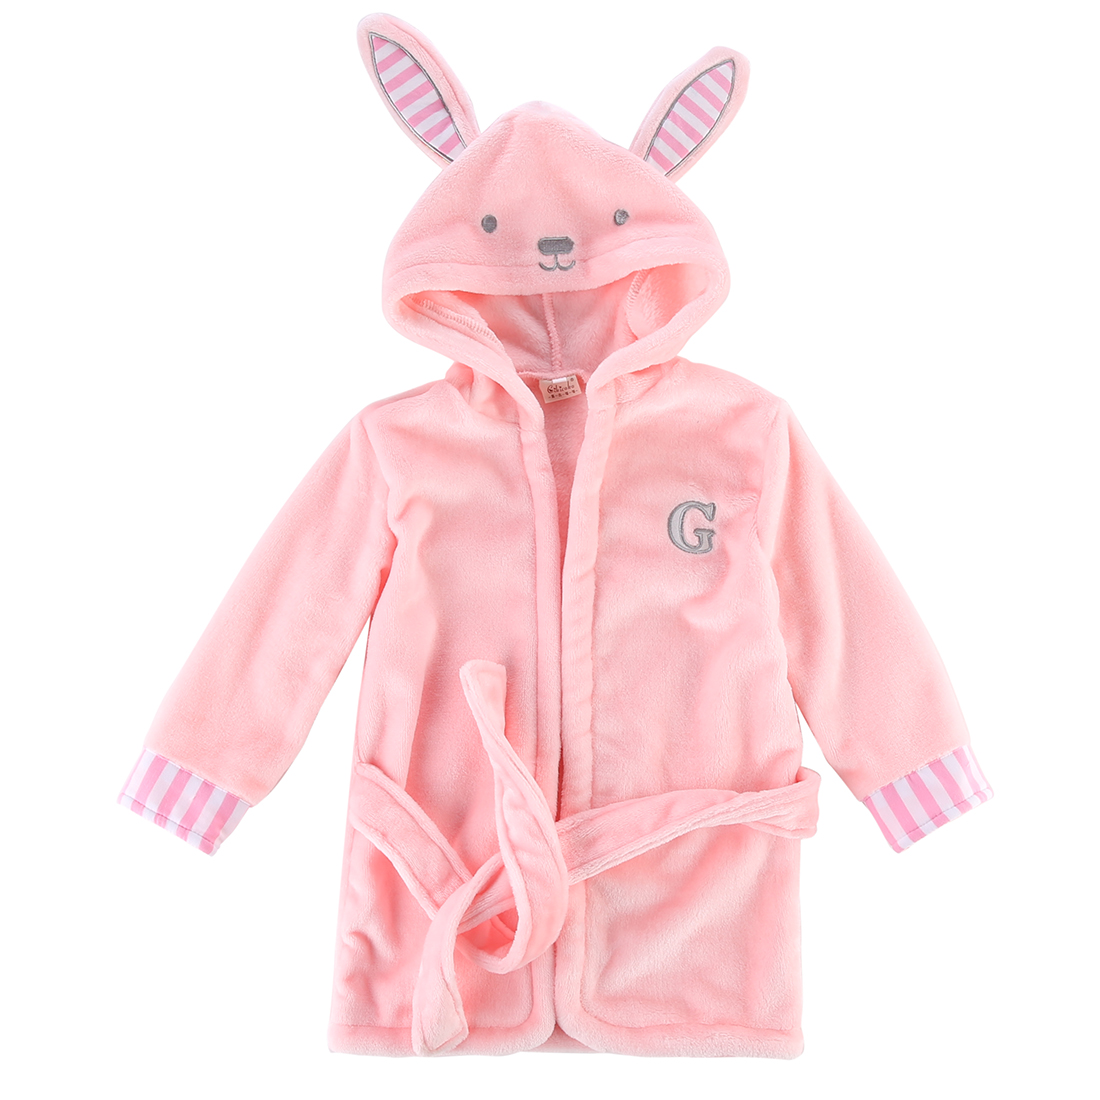 2016 new hot Cute Animal Cartoon Baby Kid Hooded Bathrobe Toddler Boy Girls  Bath Towel Clothing -in Robes from Mother   Kids on Aliexpress.com  3423232a5